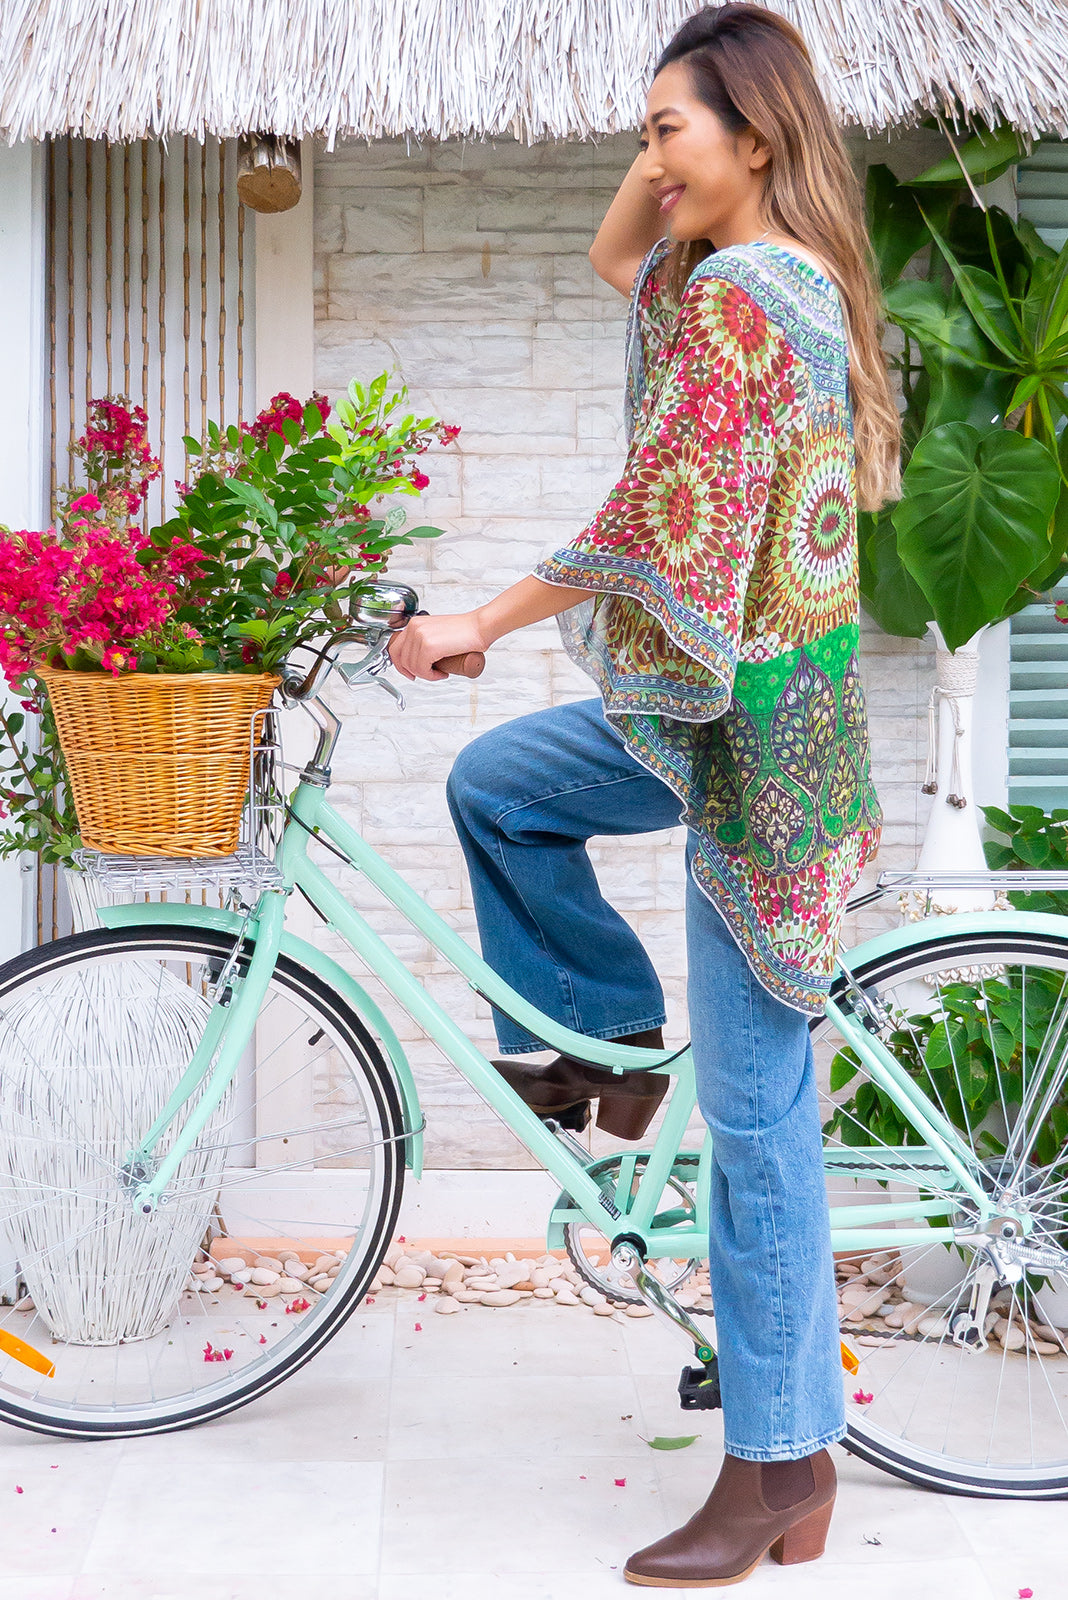 The Destiny Fore Caftan is a nice loose-fit caftan top featuring true circle caftan cut, embellishments scattered across front, kaleidoscope print in magenta, white, cobalt, orange and greens in 100% polyester chiffon.